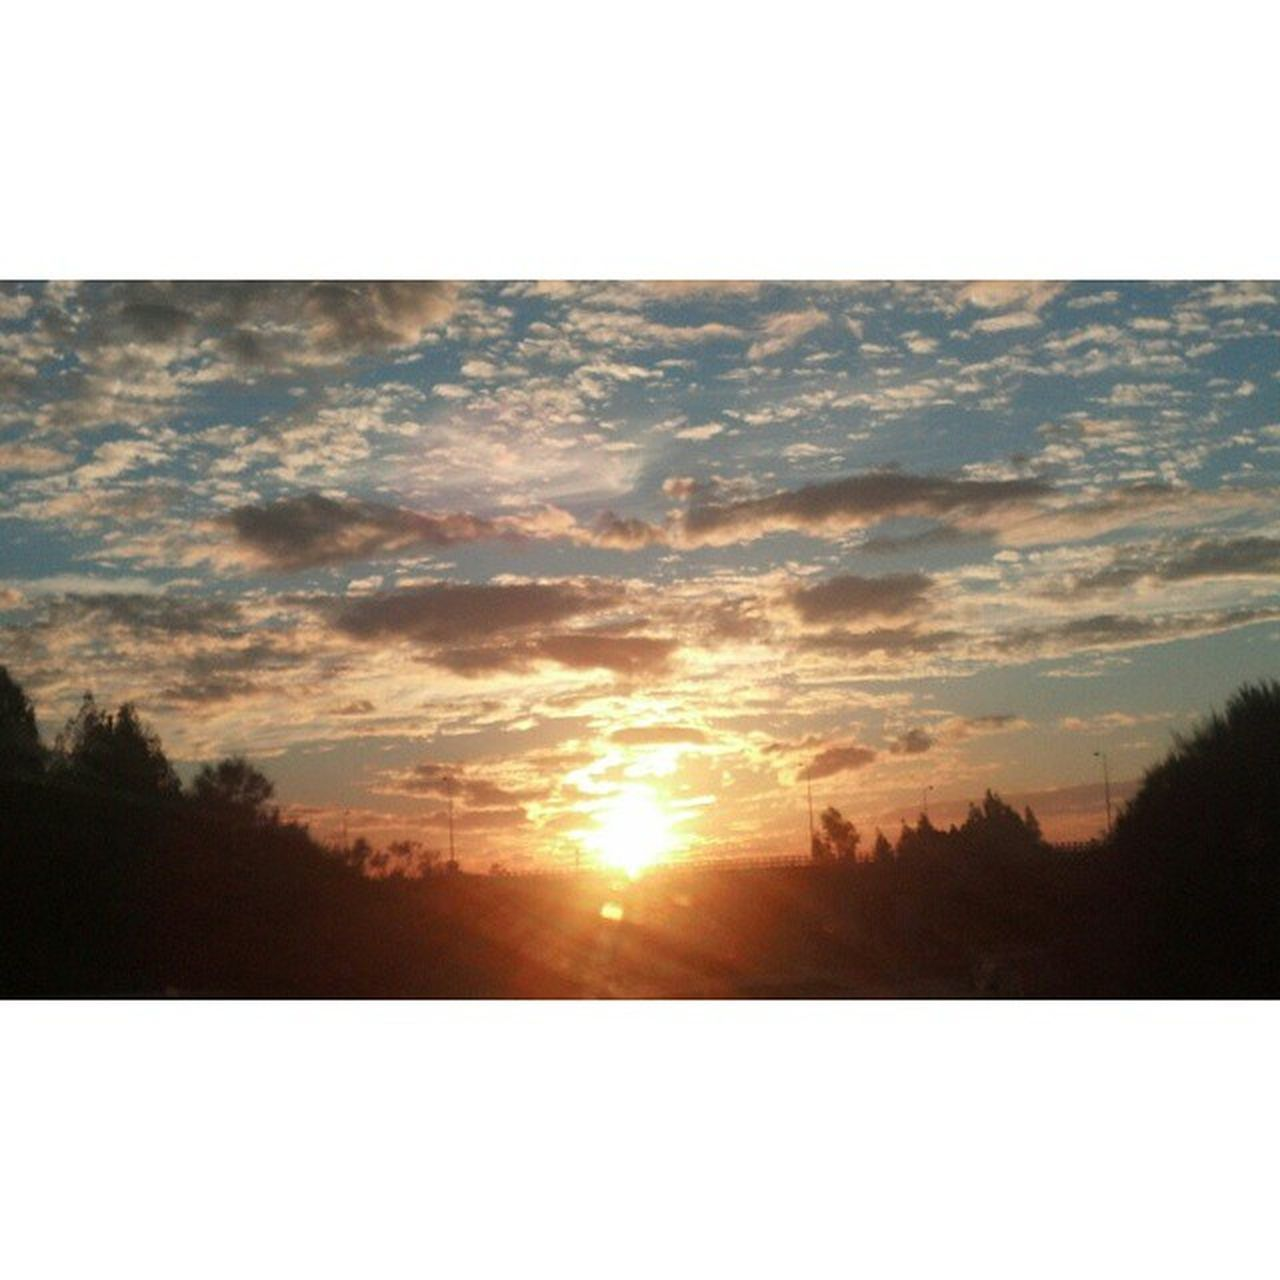 Sky Amazing FantasticDay Nofilters Instapic Instasize Sun World Clouds Nature